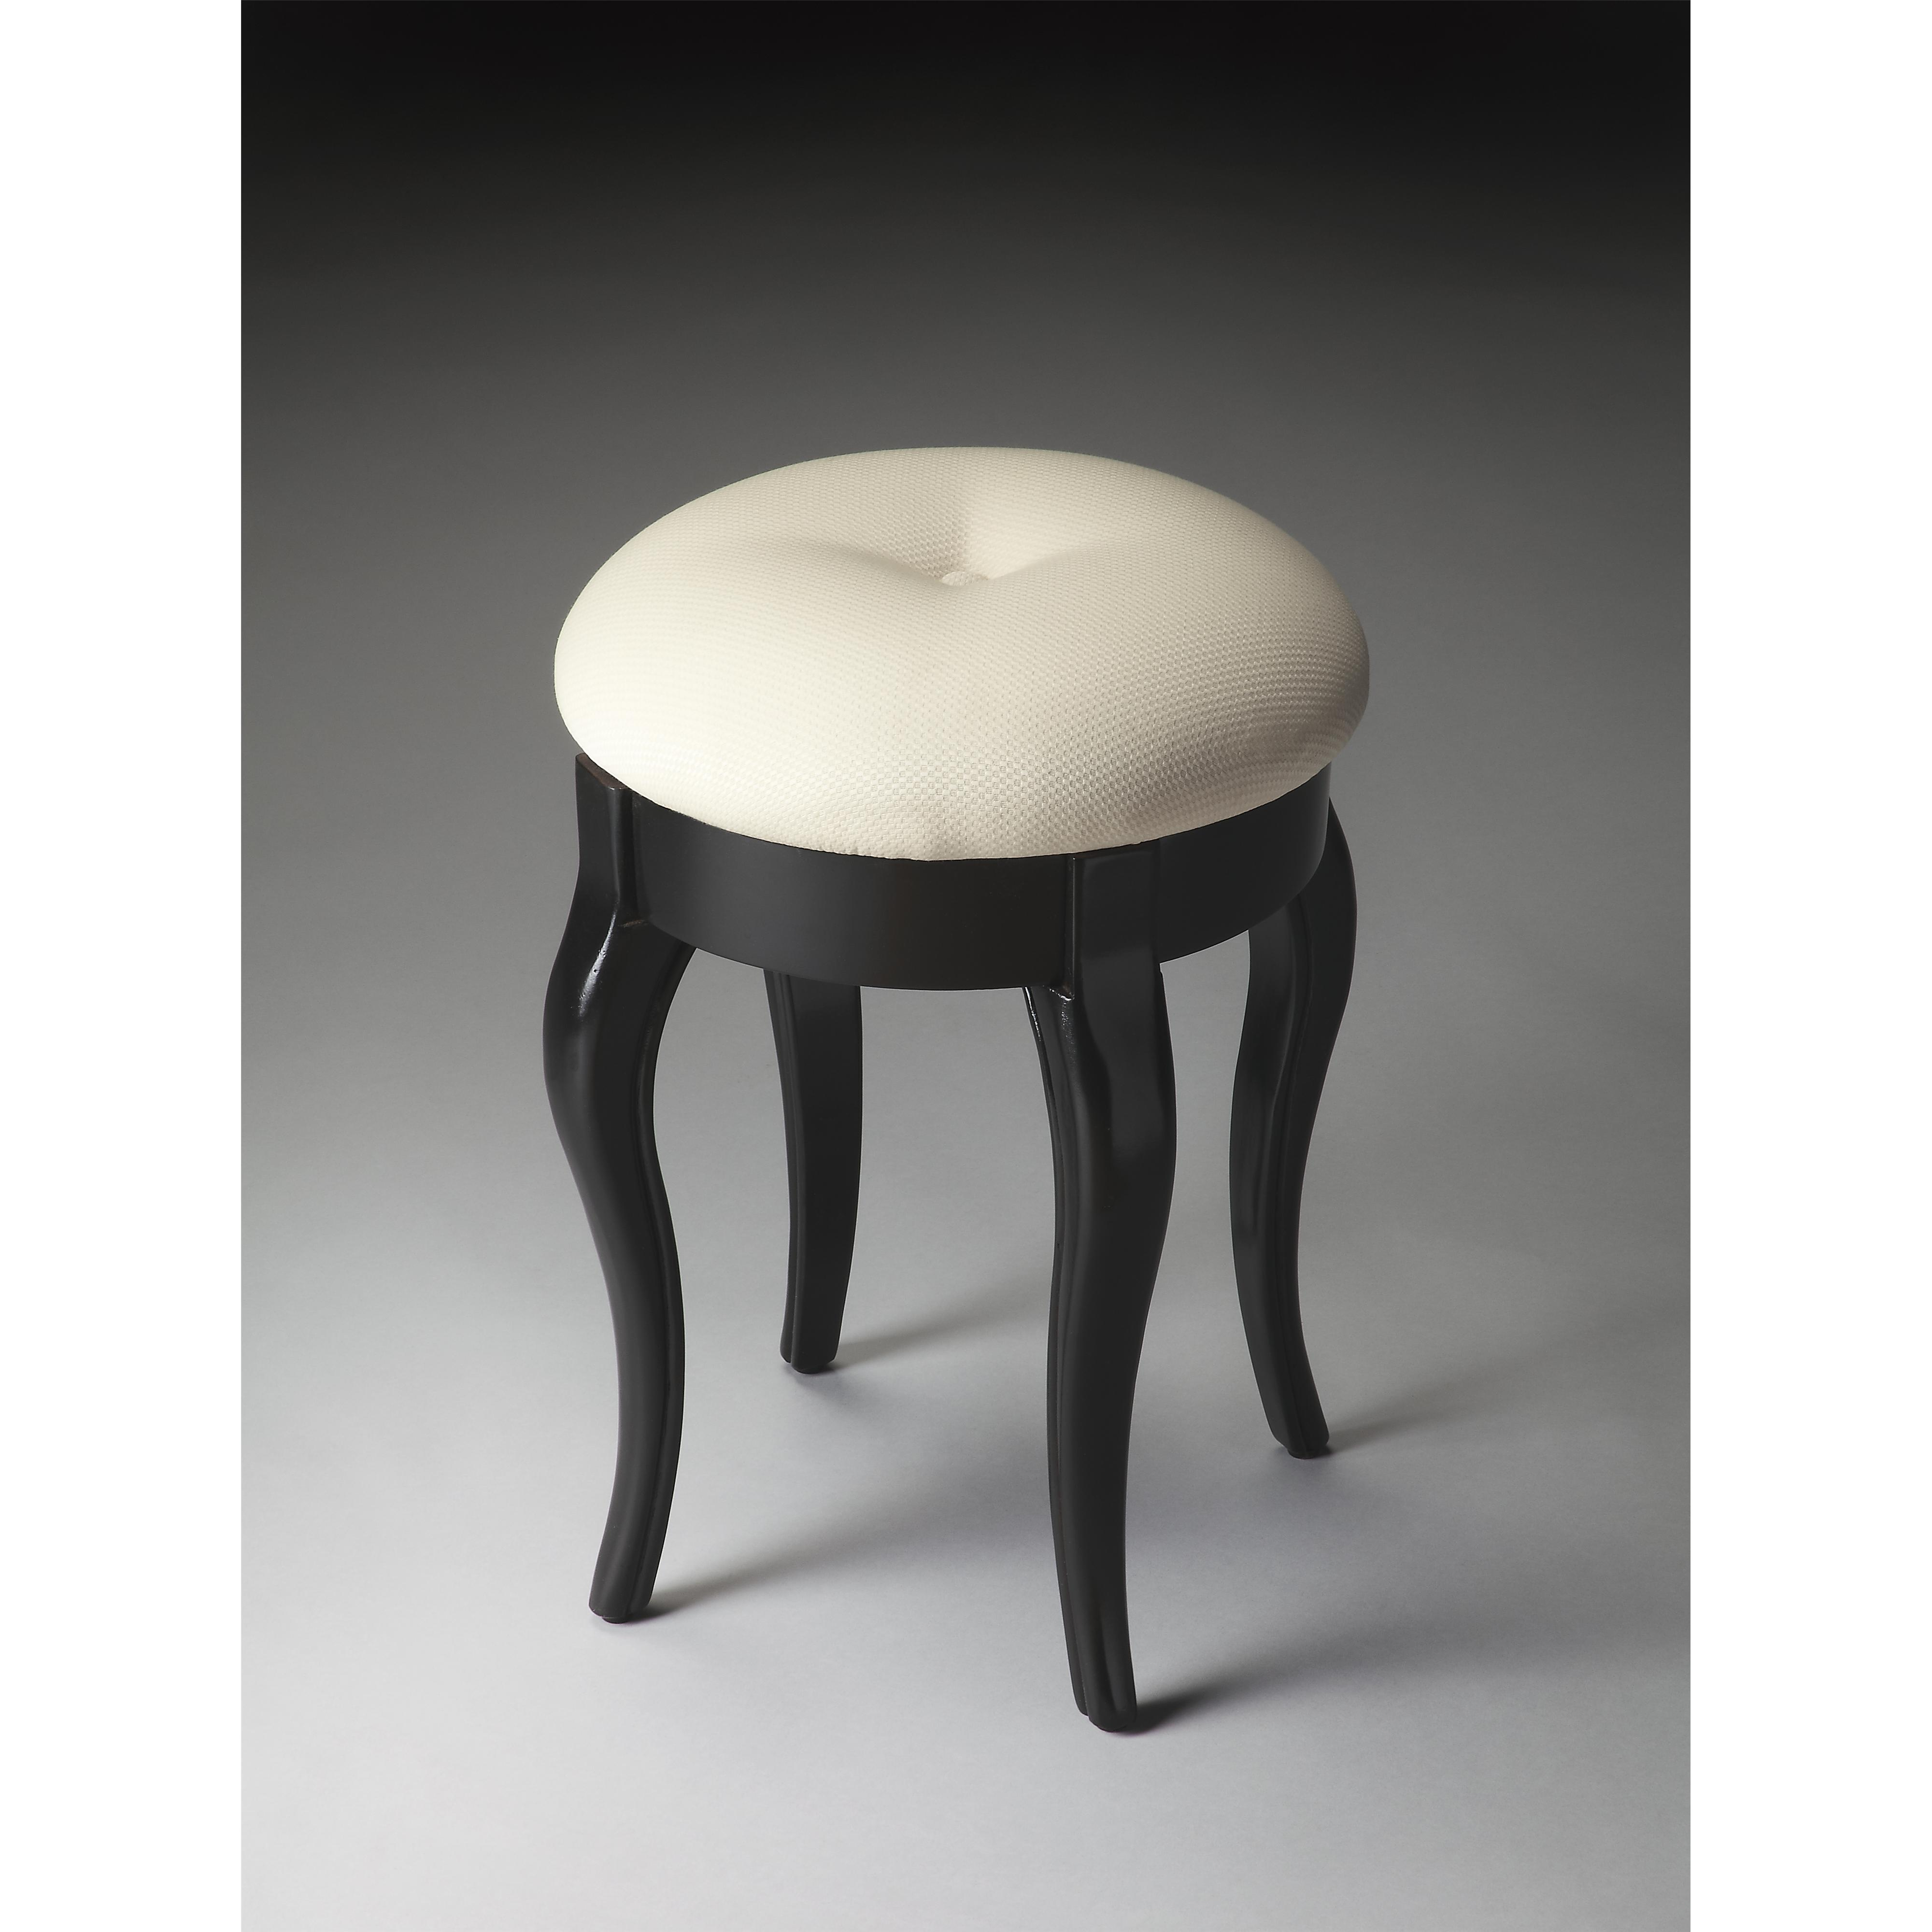 Butler Specialty Company Masterpiece Vanity Stool - Item Number: 2135111